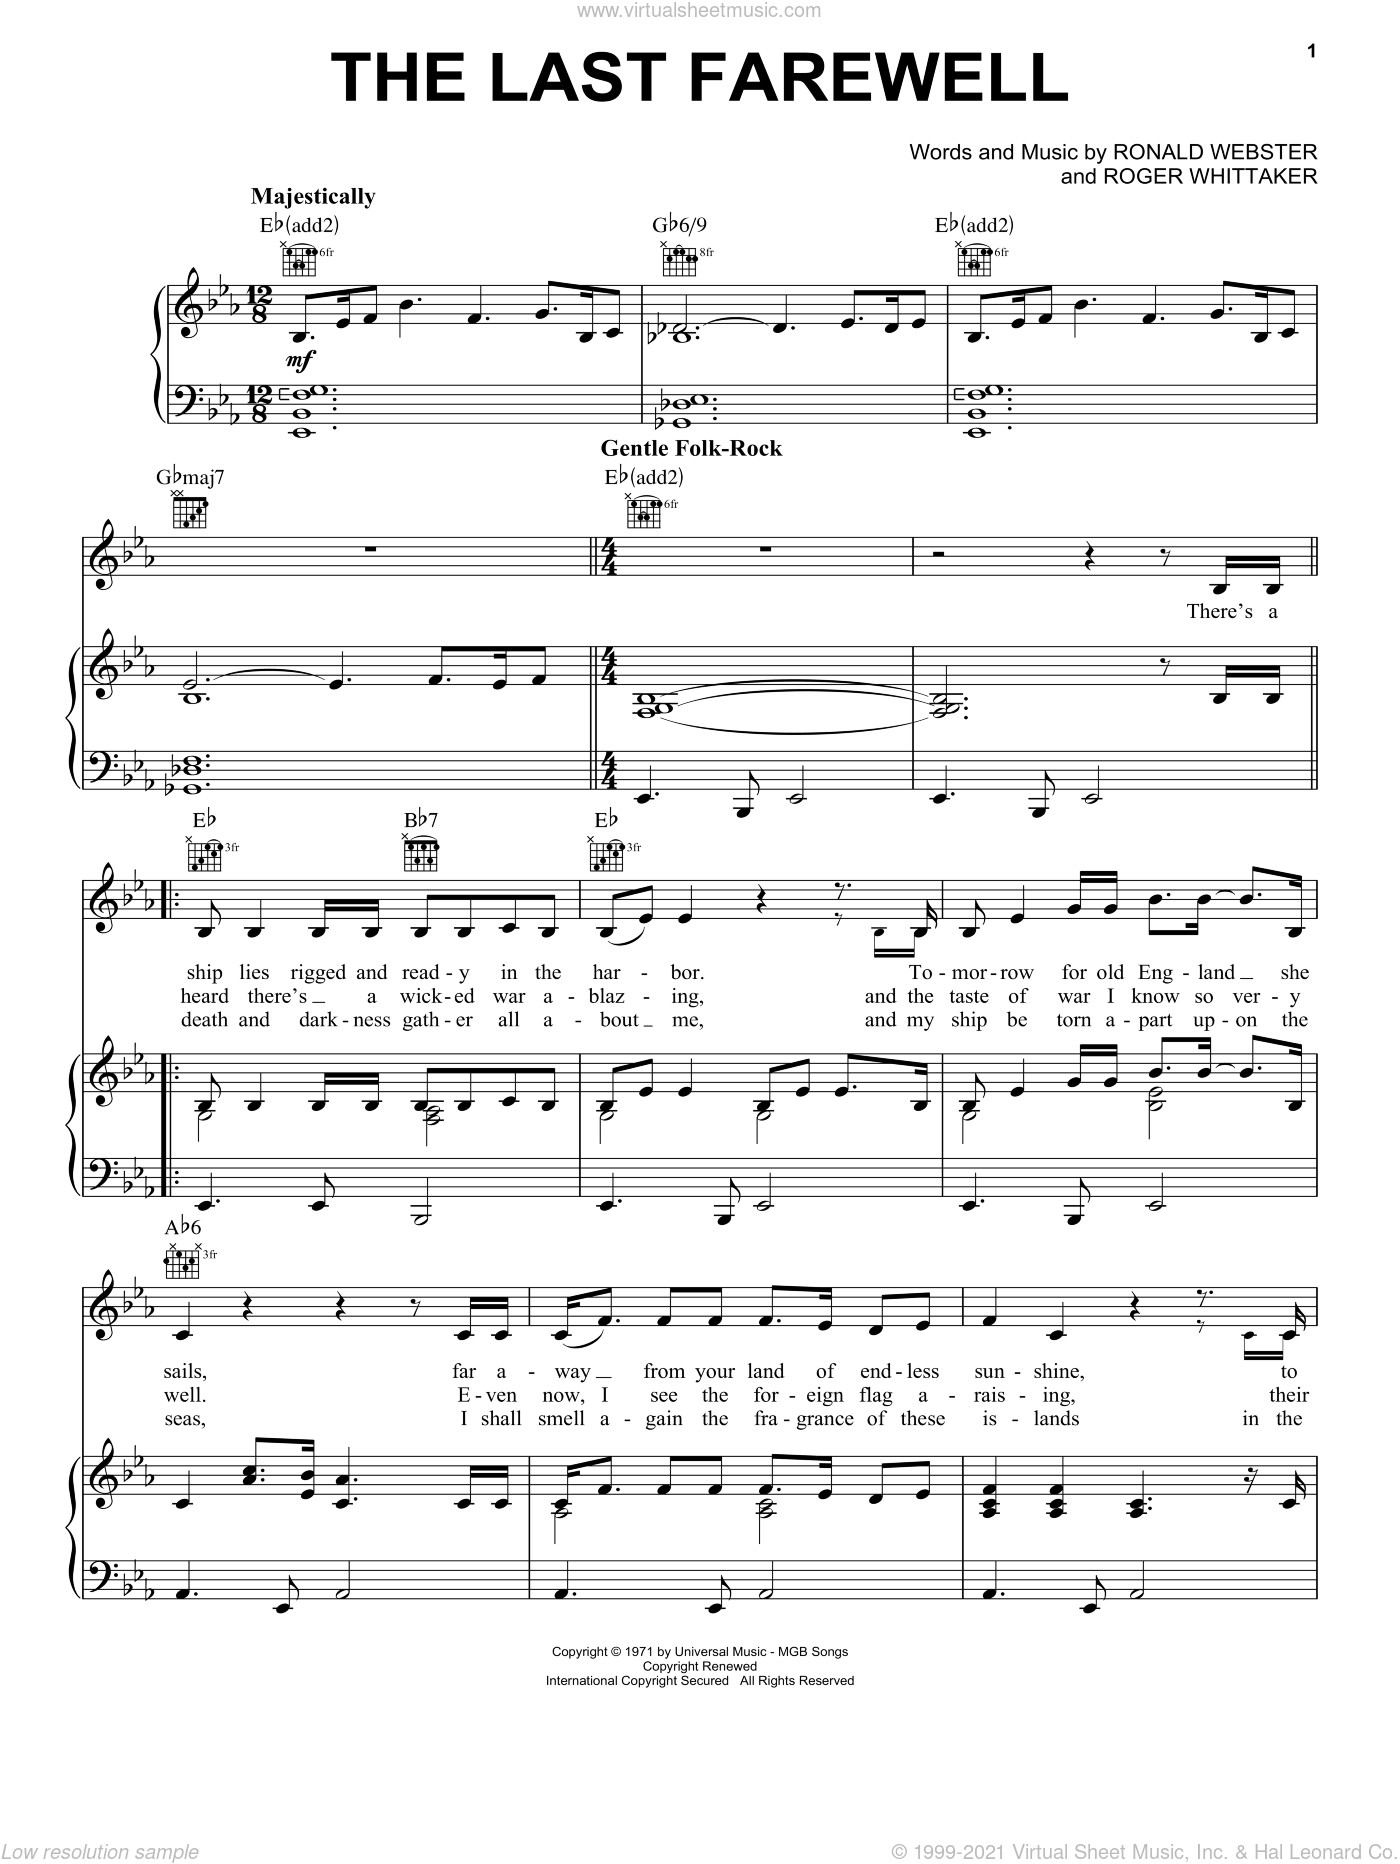 The Last Farewell sheet music for voice, piano or guitar by Ronald Webster